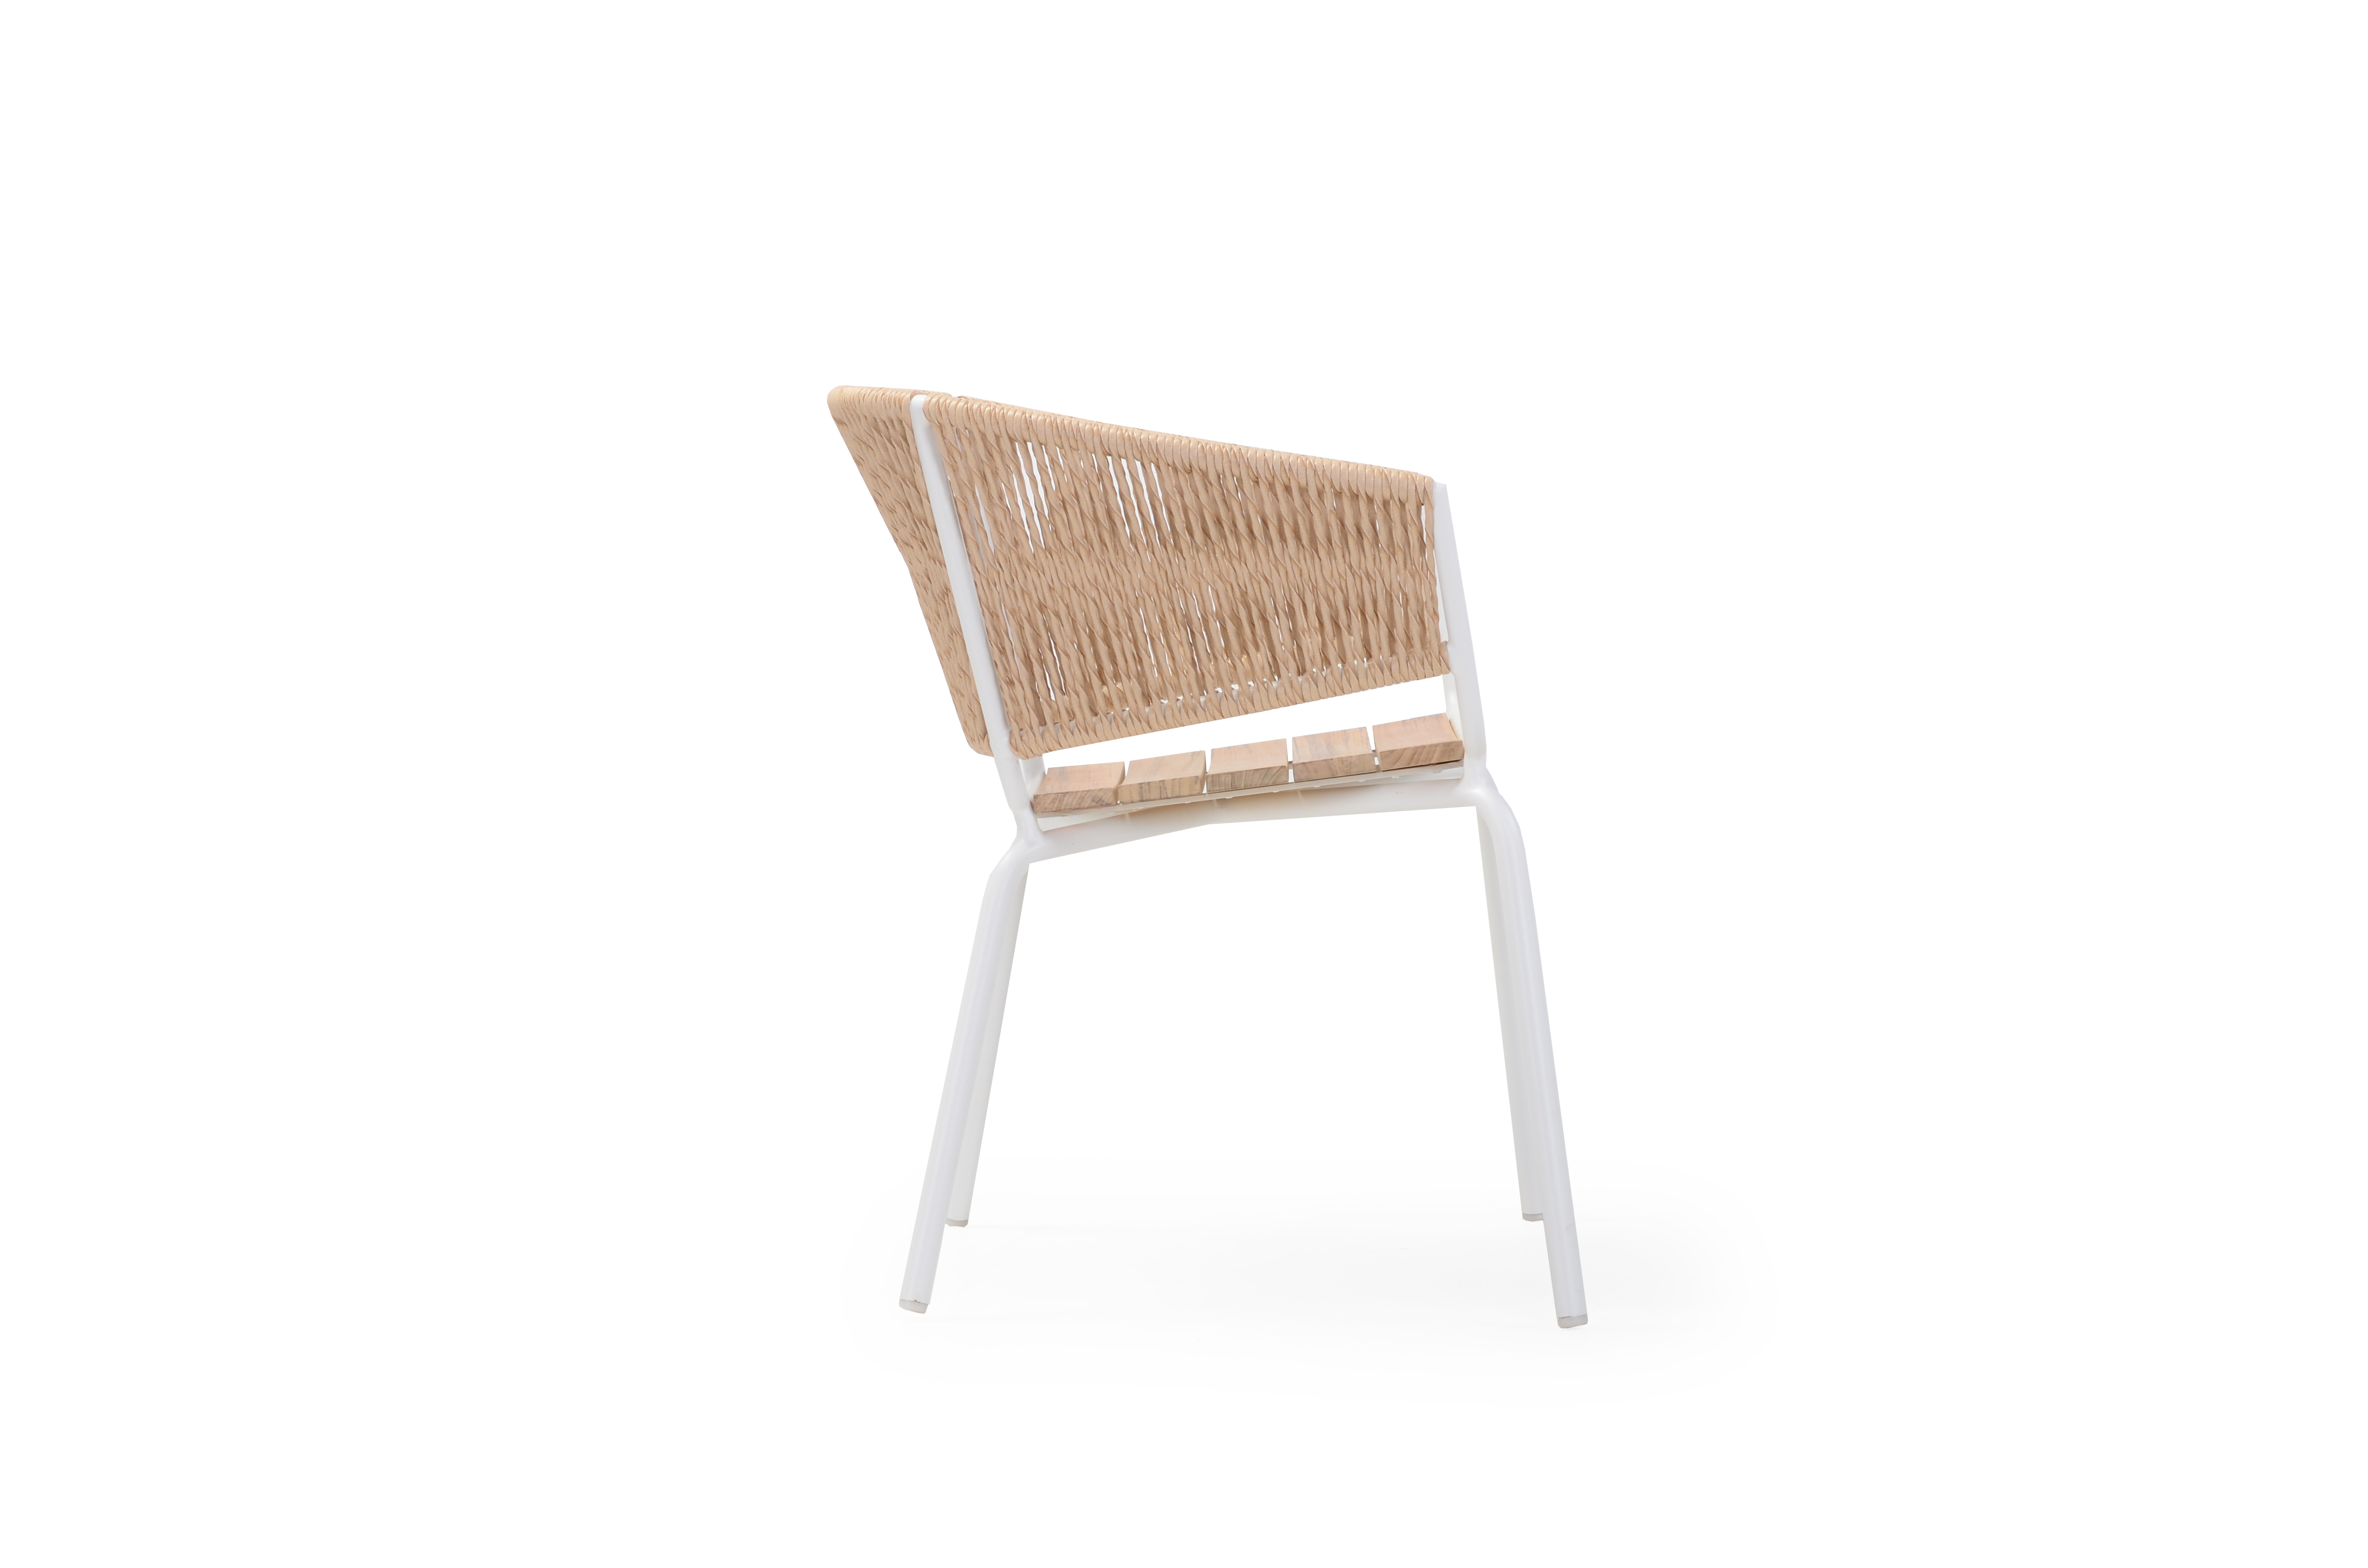 high end dining chairs. Ake Dining Chair Teak Contract Outdoor Furniture High End Hospitality Chairs A